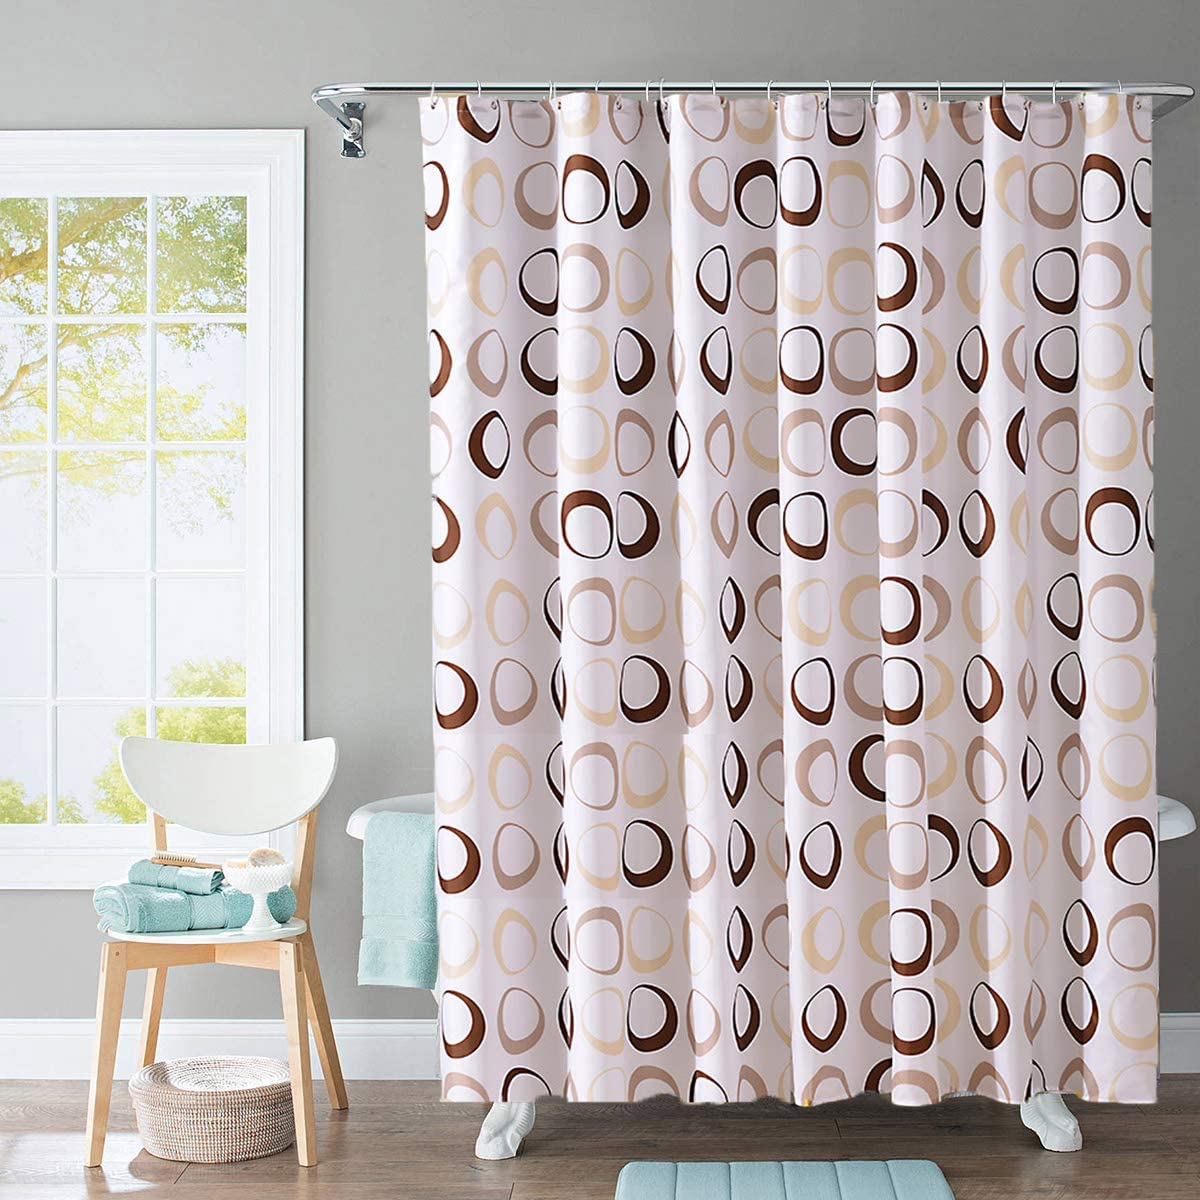 Tian Home Fabric Shower Curtain with 12 Hooks, Waterproof and Bottom's Weighted (Big Circle)